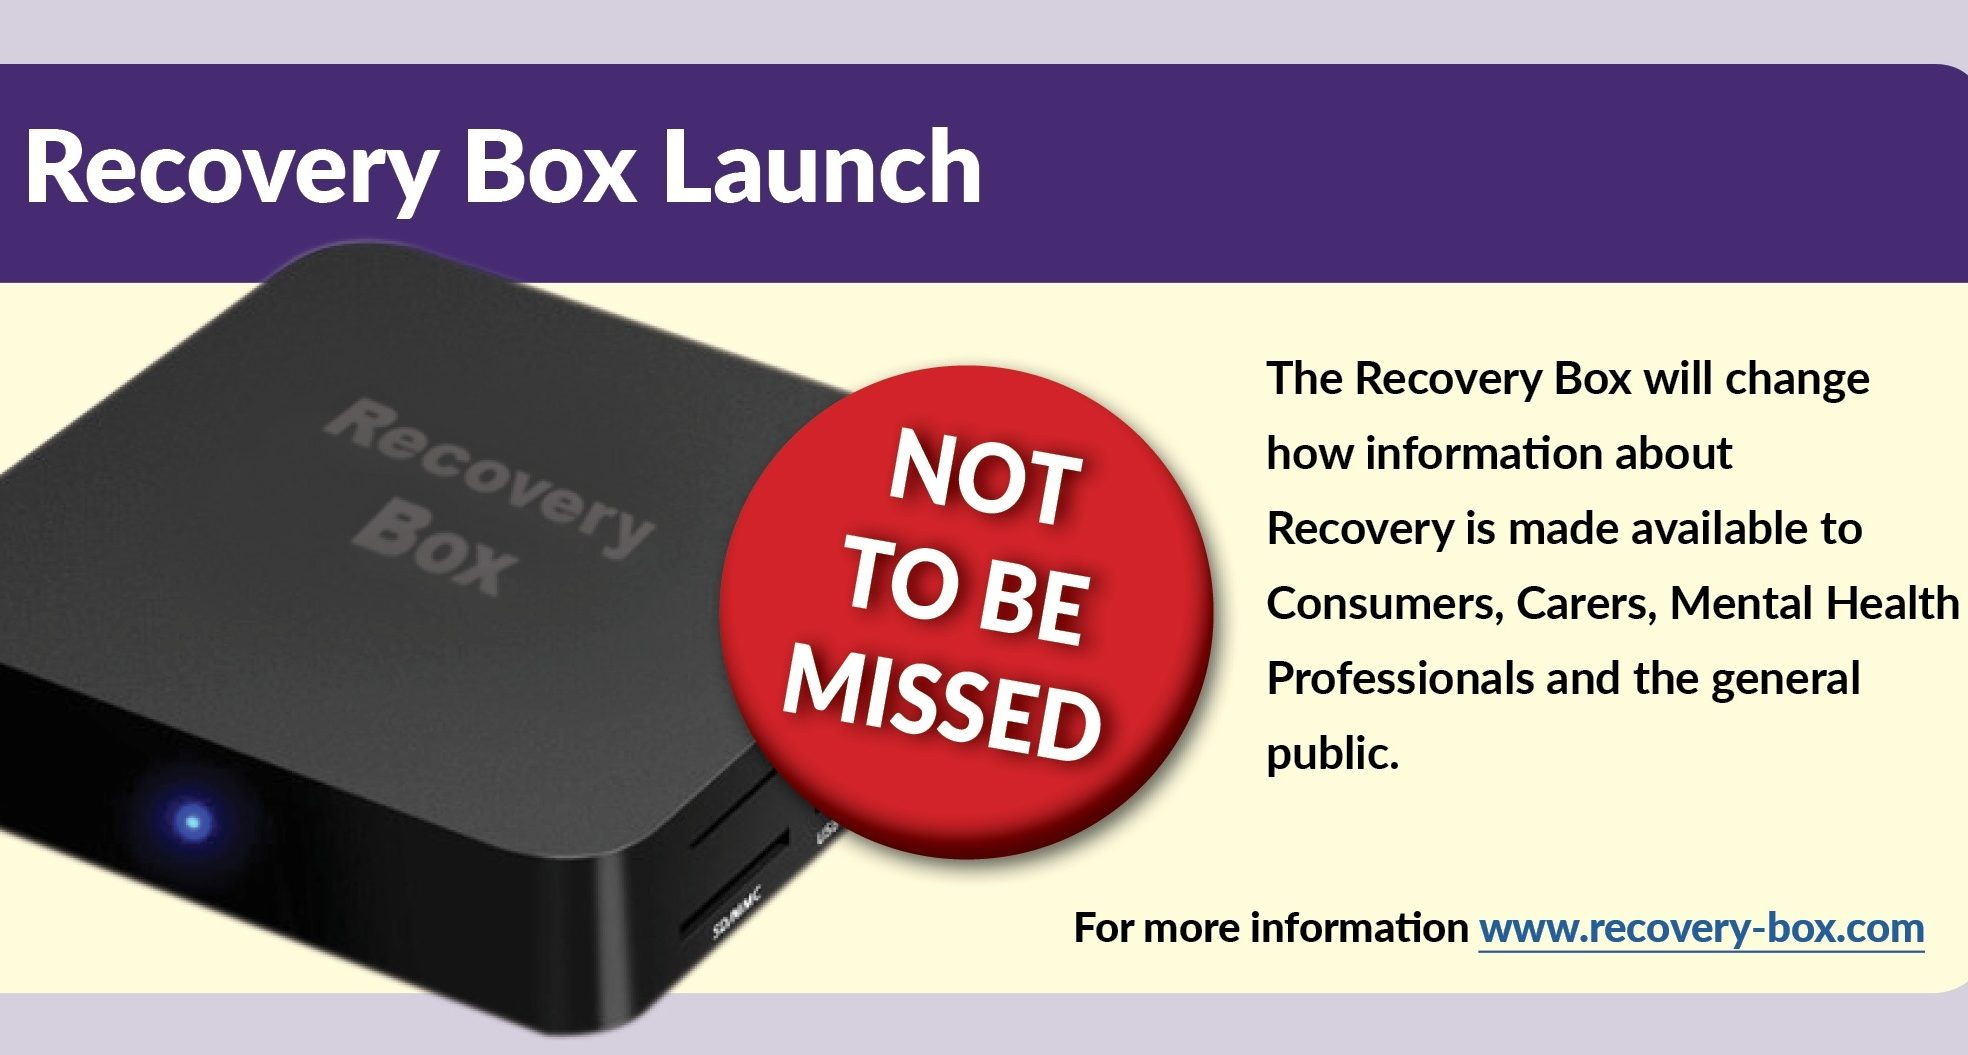 Recovery Box